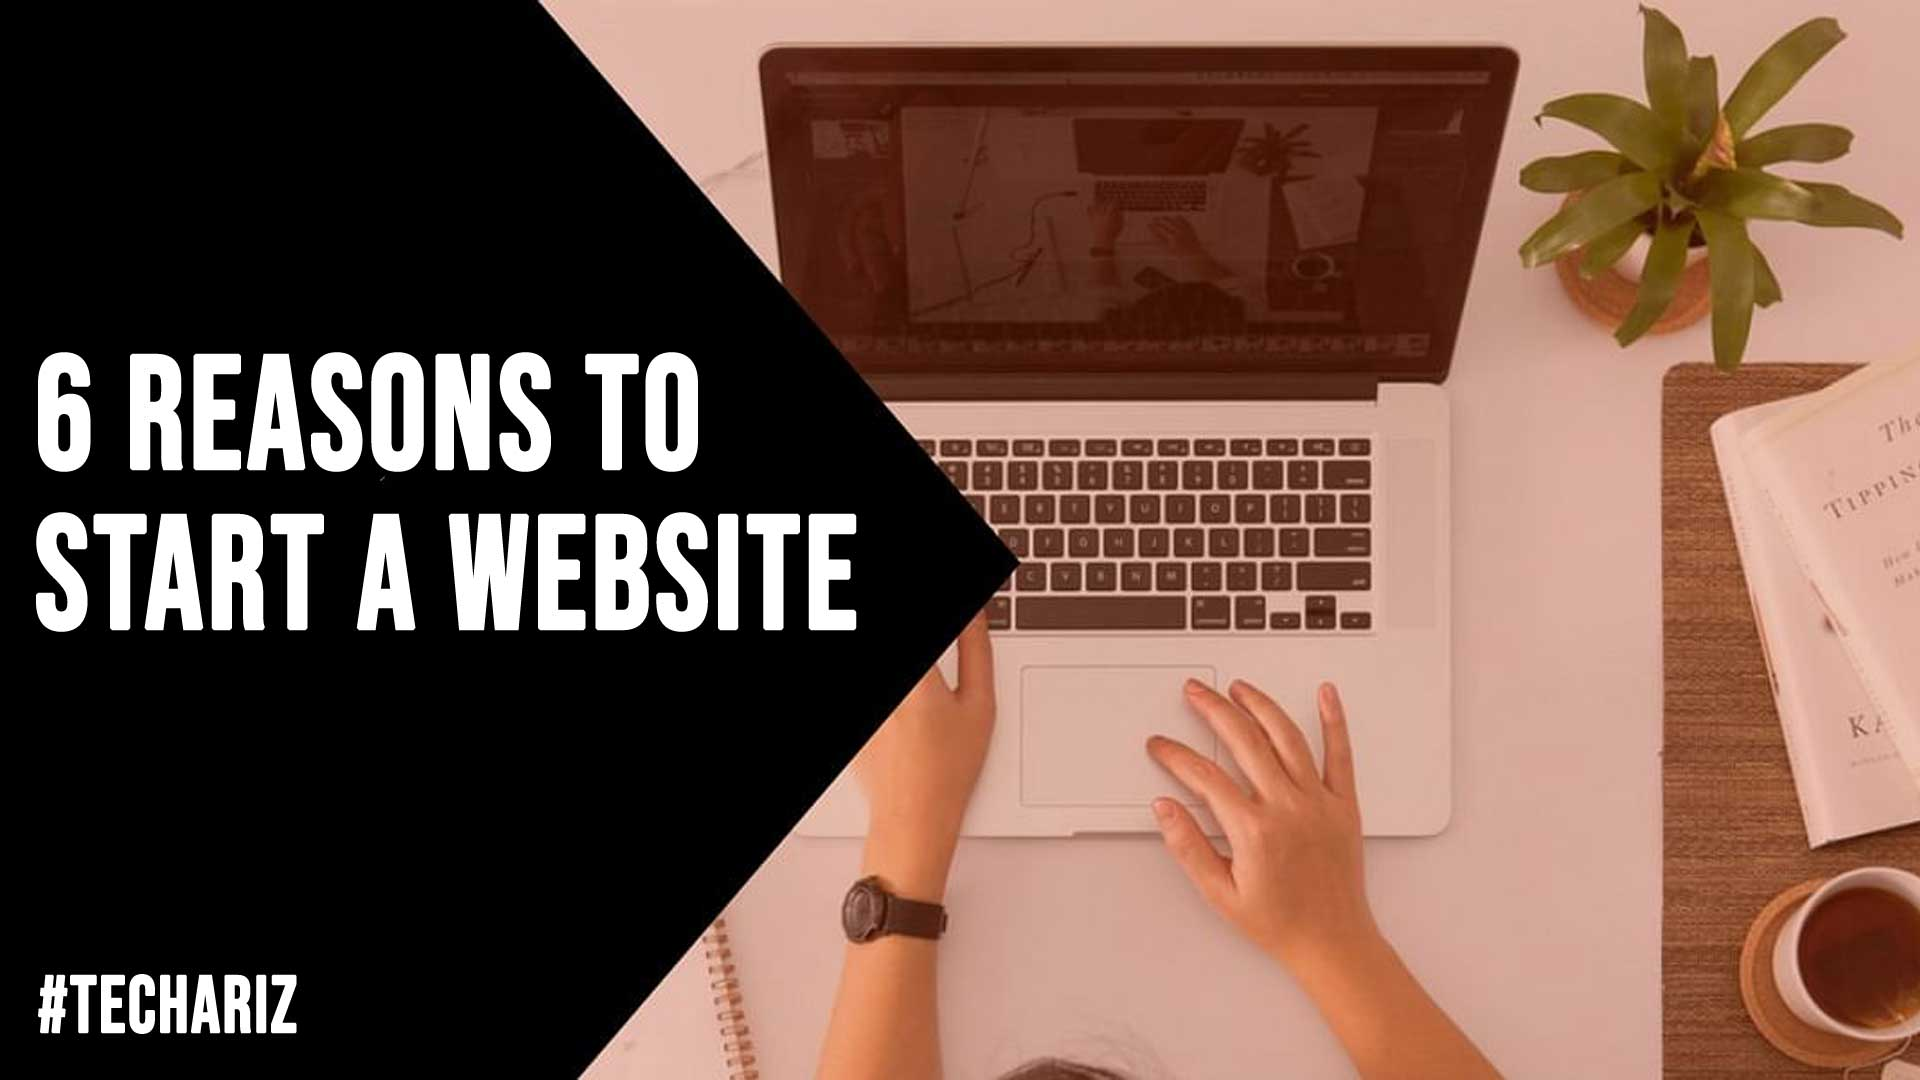 6 Reasons To Start A Website